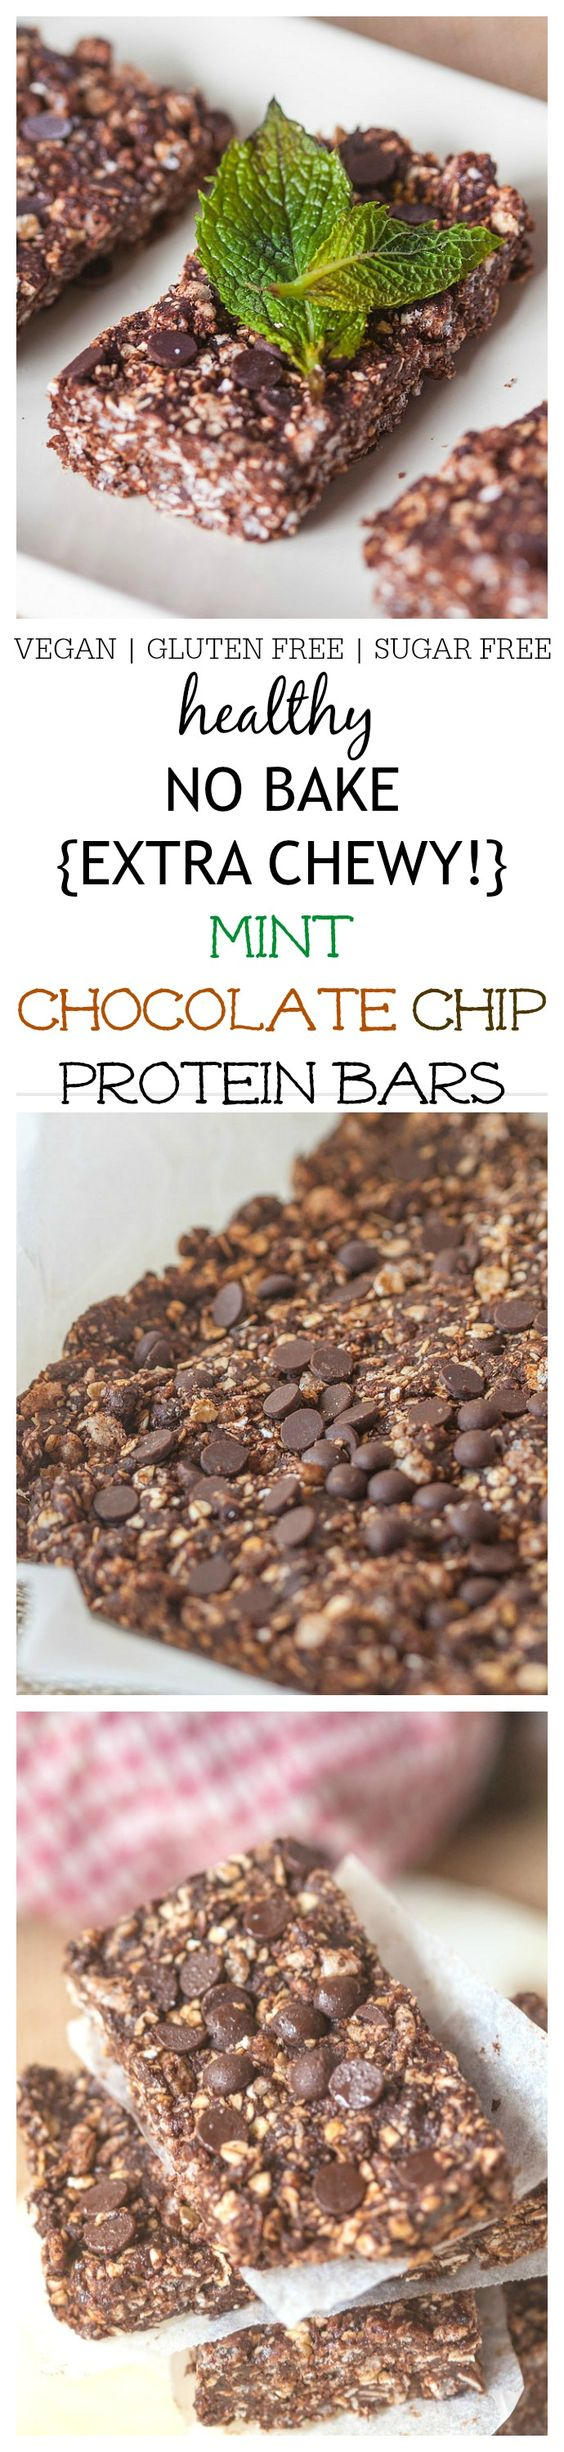 bars chips healthy no bake protein bars chocolate bar protein bar ...